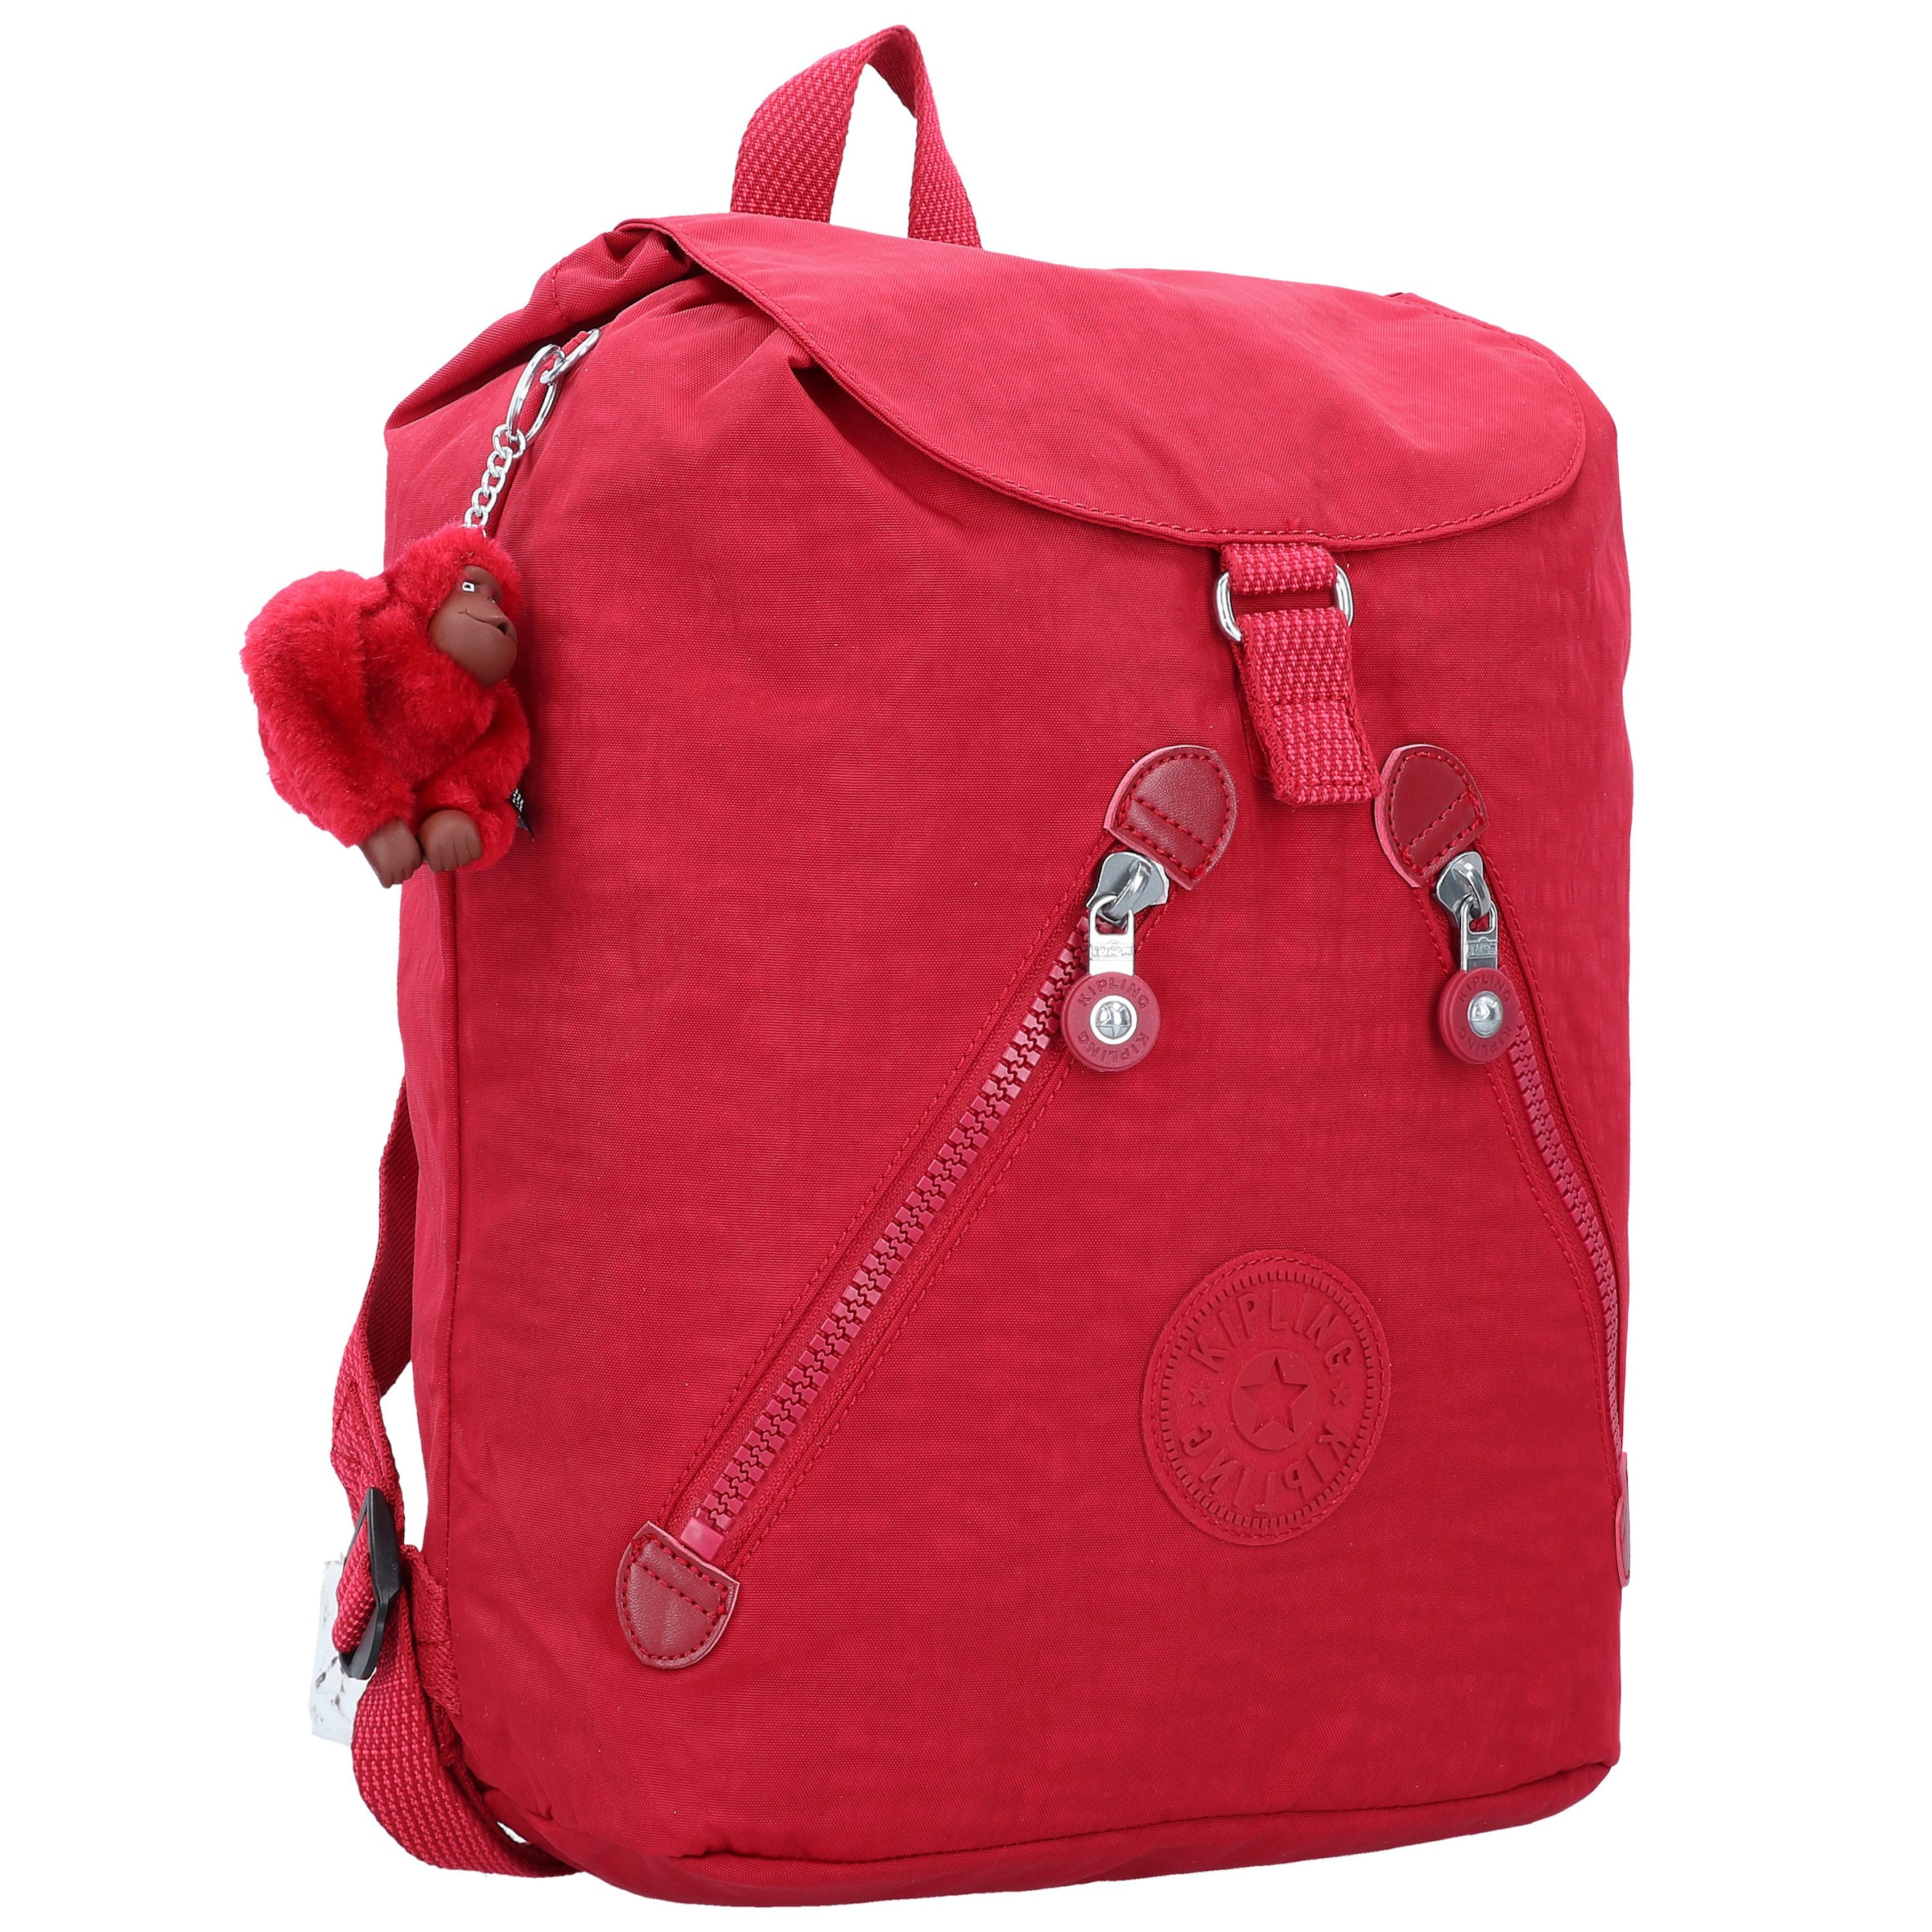 Rucksack Rot Fundamental Kipling Ii' In 'basic WEDY9IH2